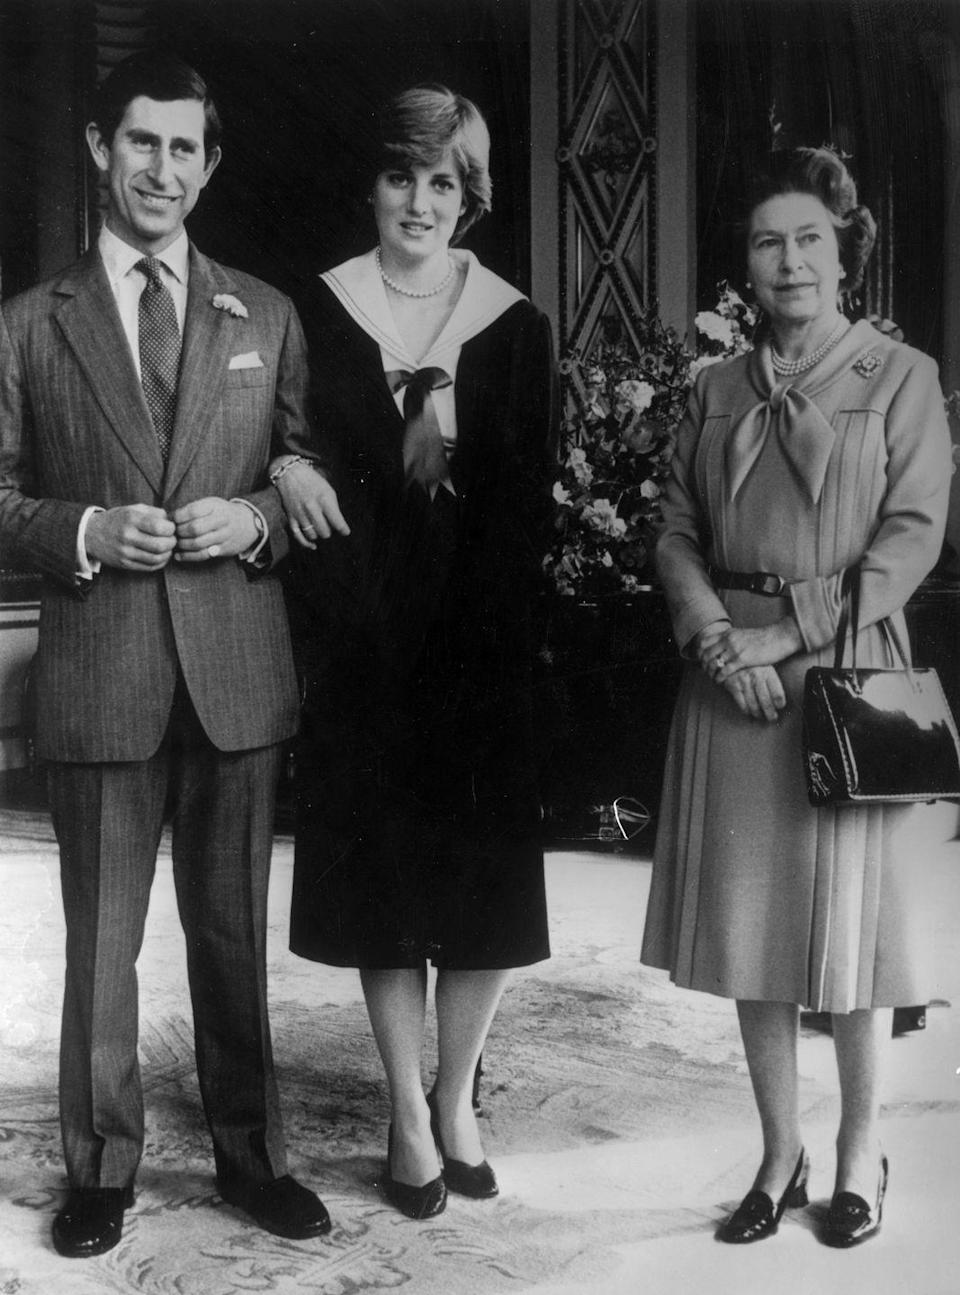 <p>Prince Charles and Diana pose with Queen Elizabeth II at Buckingham Palace after she gave her consent for their wedding. Is it just us or does everyone look rather...tense?</p>